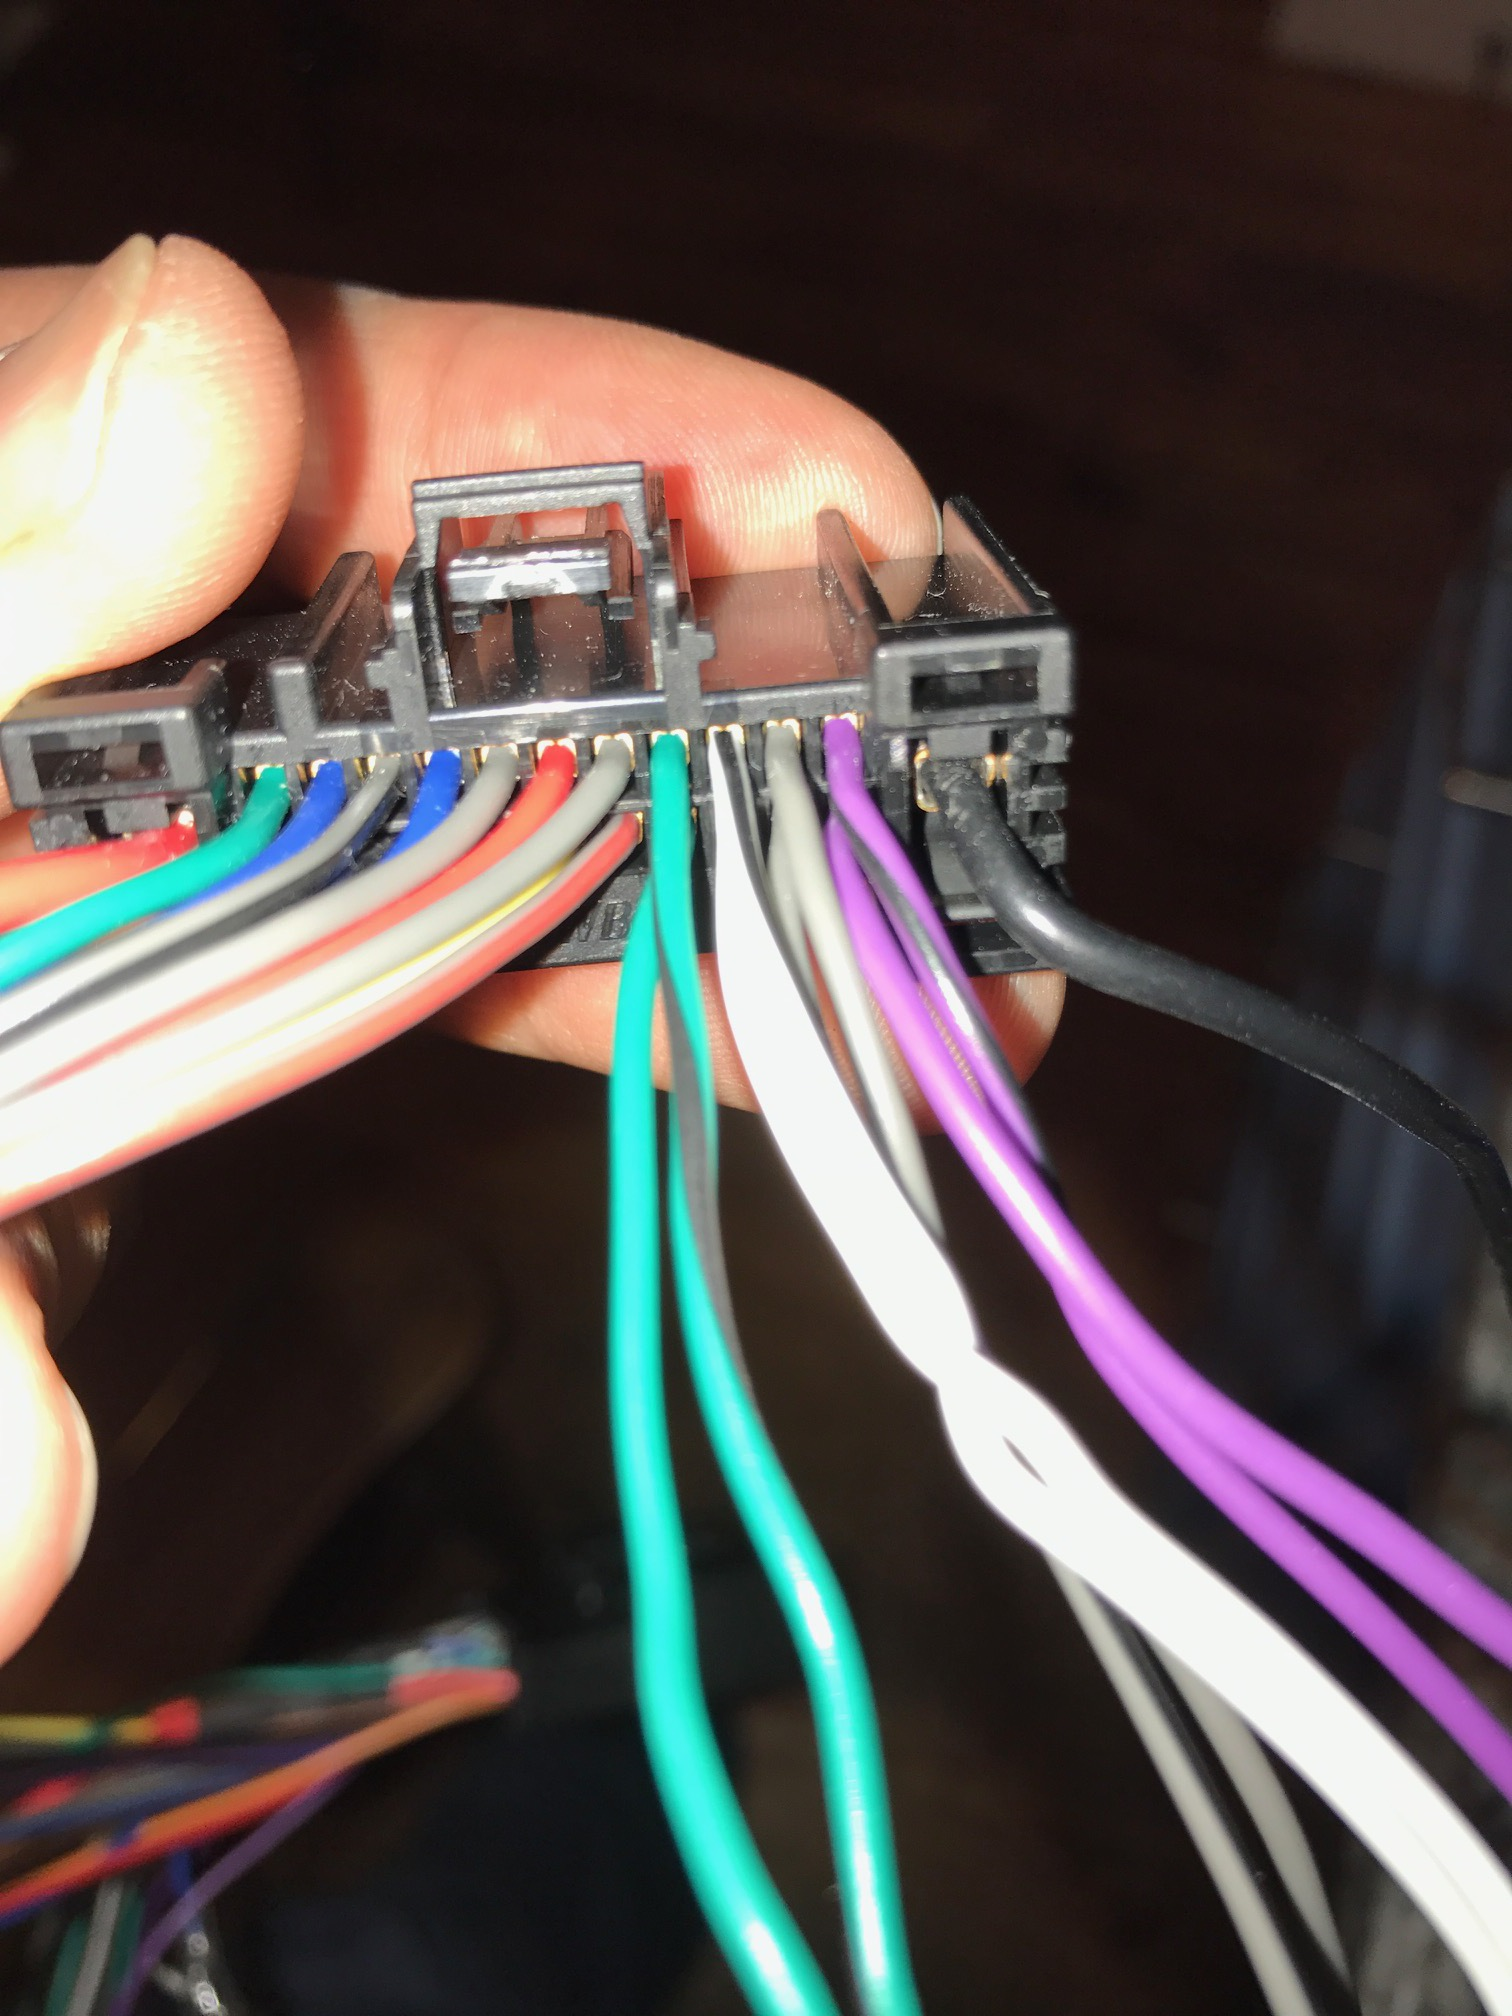 stereo wiring simple electrical diagrams speaker wires, ford transit connect 2014 - audio, navigation and sync forum